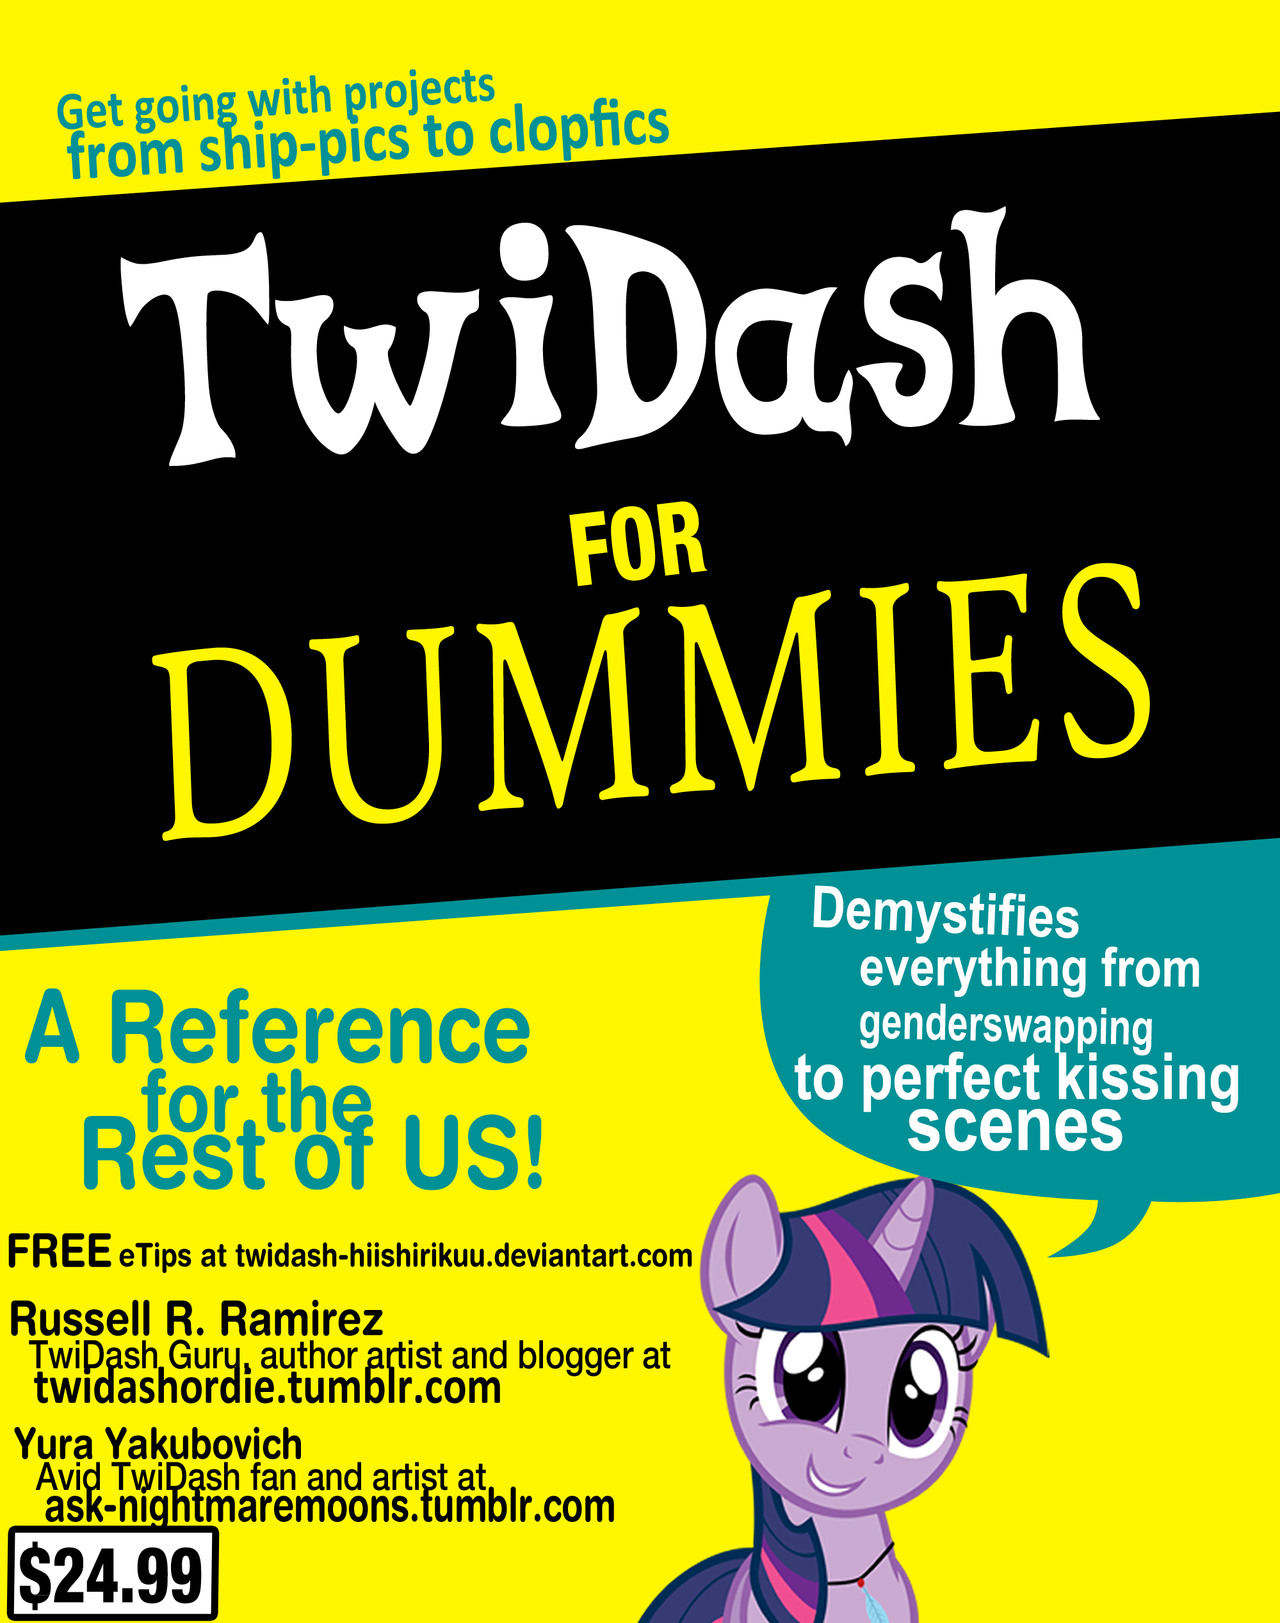 twidash for dummies by yourfavoritesenpai on twidash for dummies by yourfavoritesenpai twidash for dummies by yourfavoritesenpai